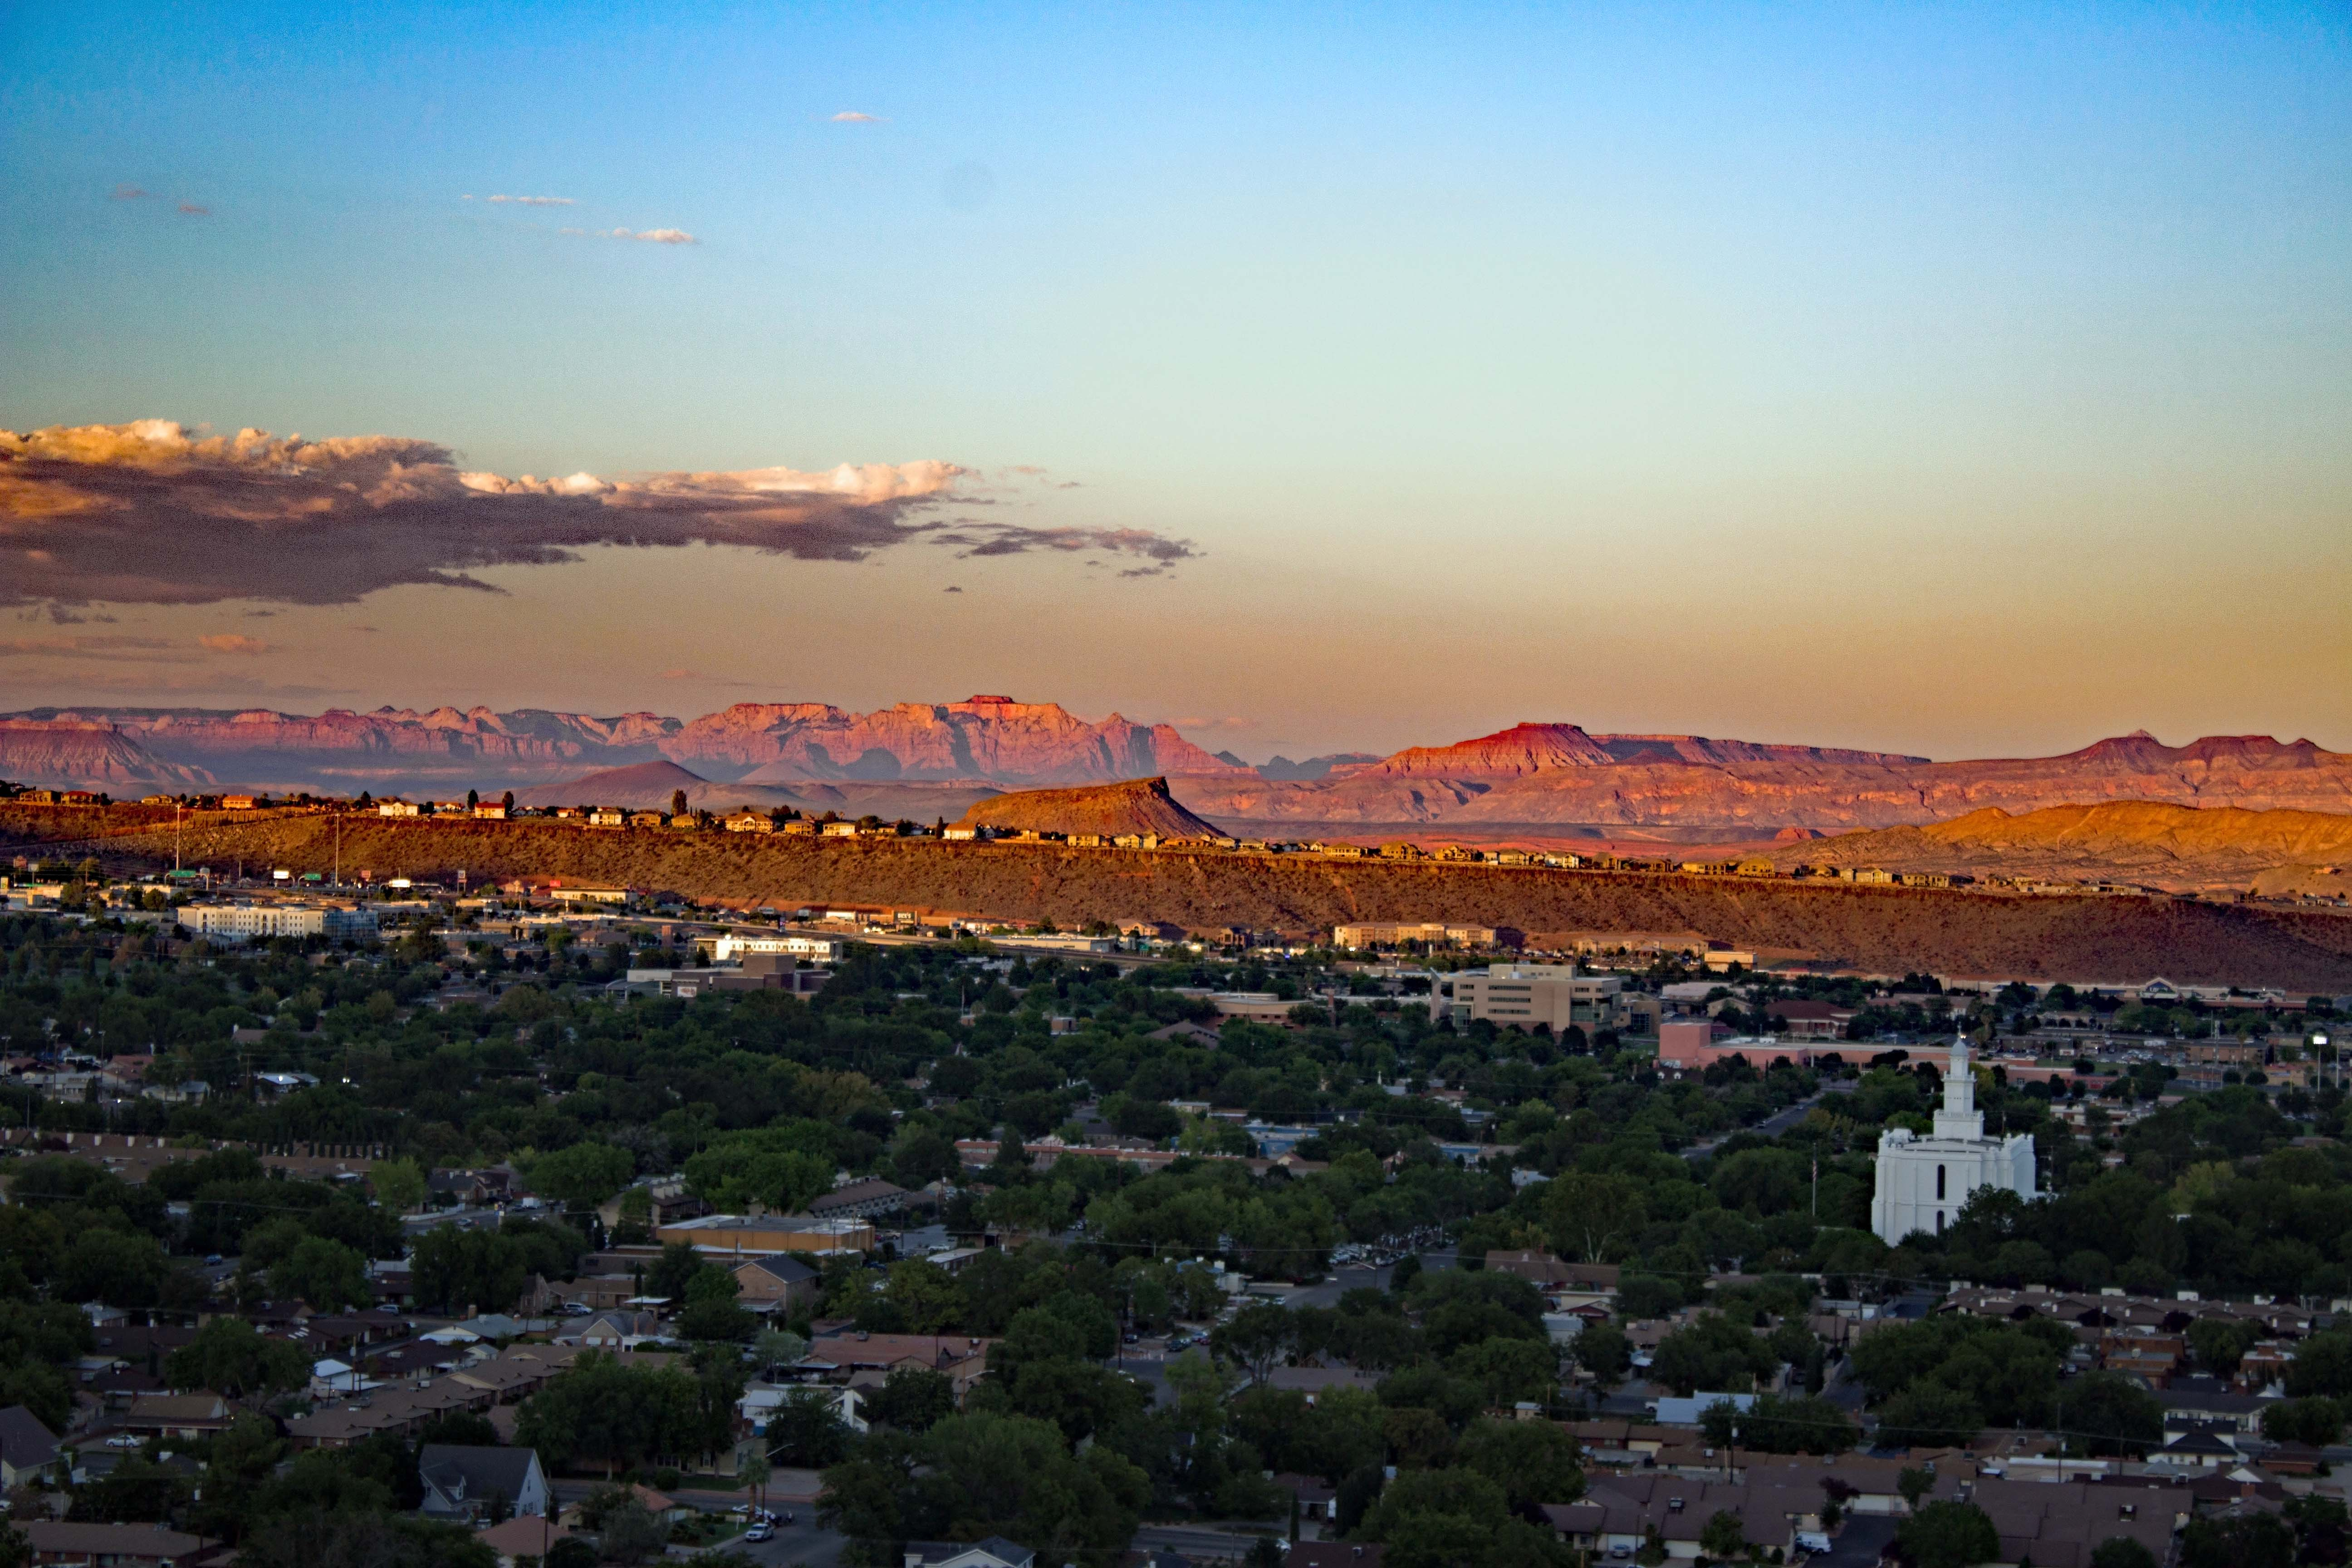 St. George, UT, topped the list of fastest growing metro areas 2018-2020